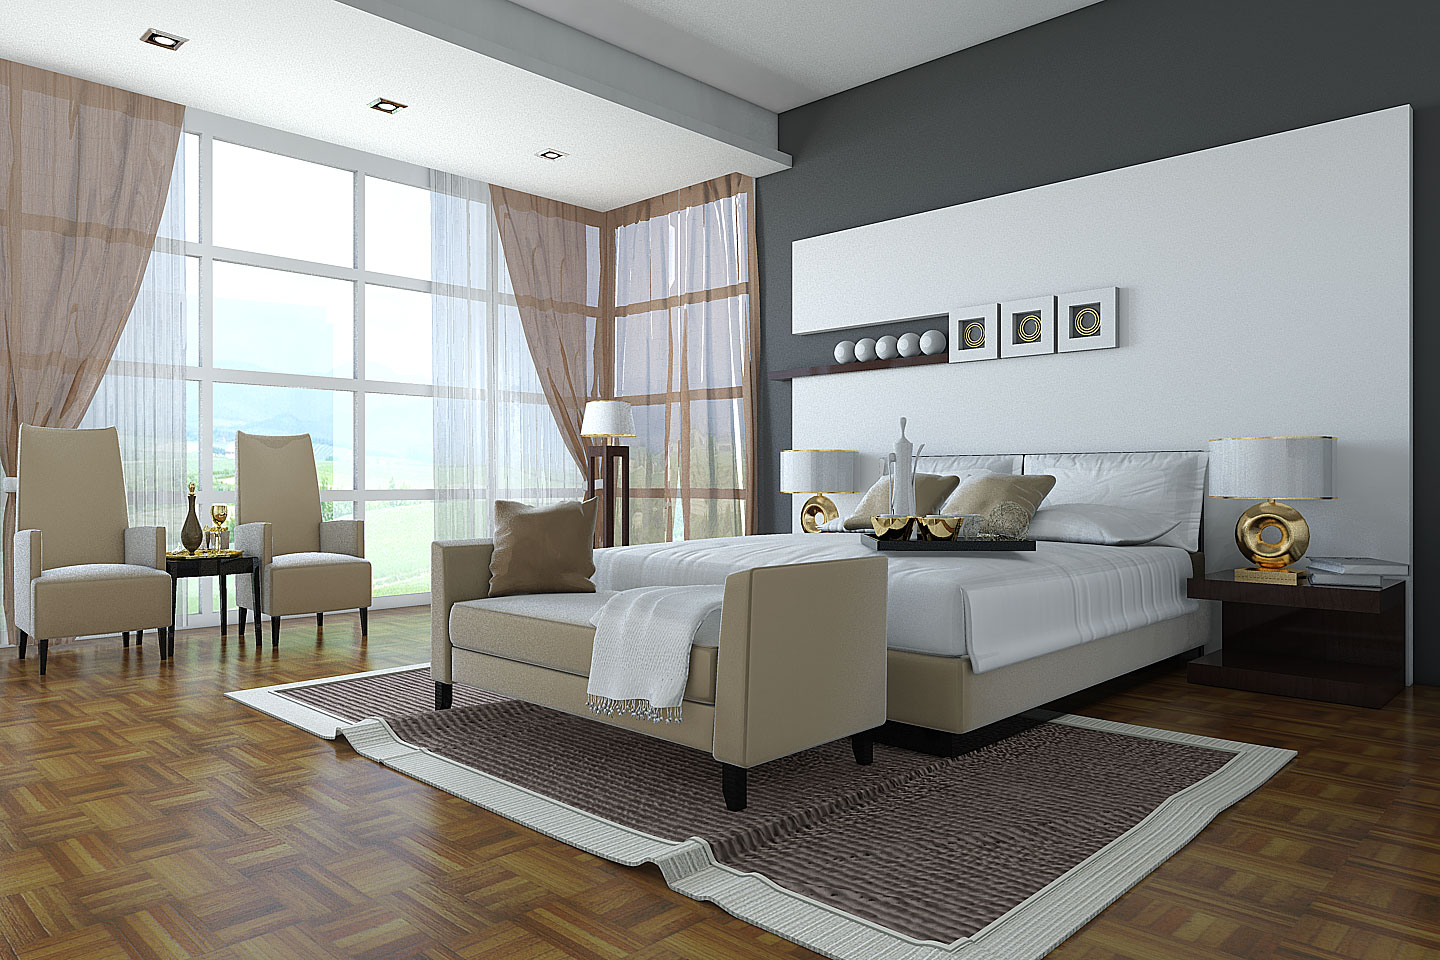 classic-bedroom-design1.jpg